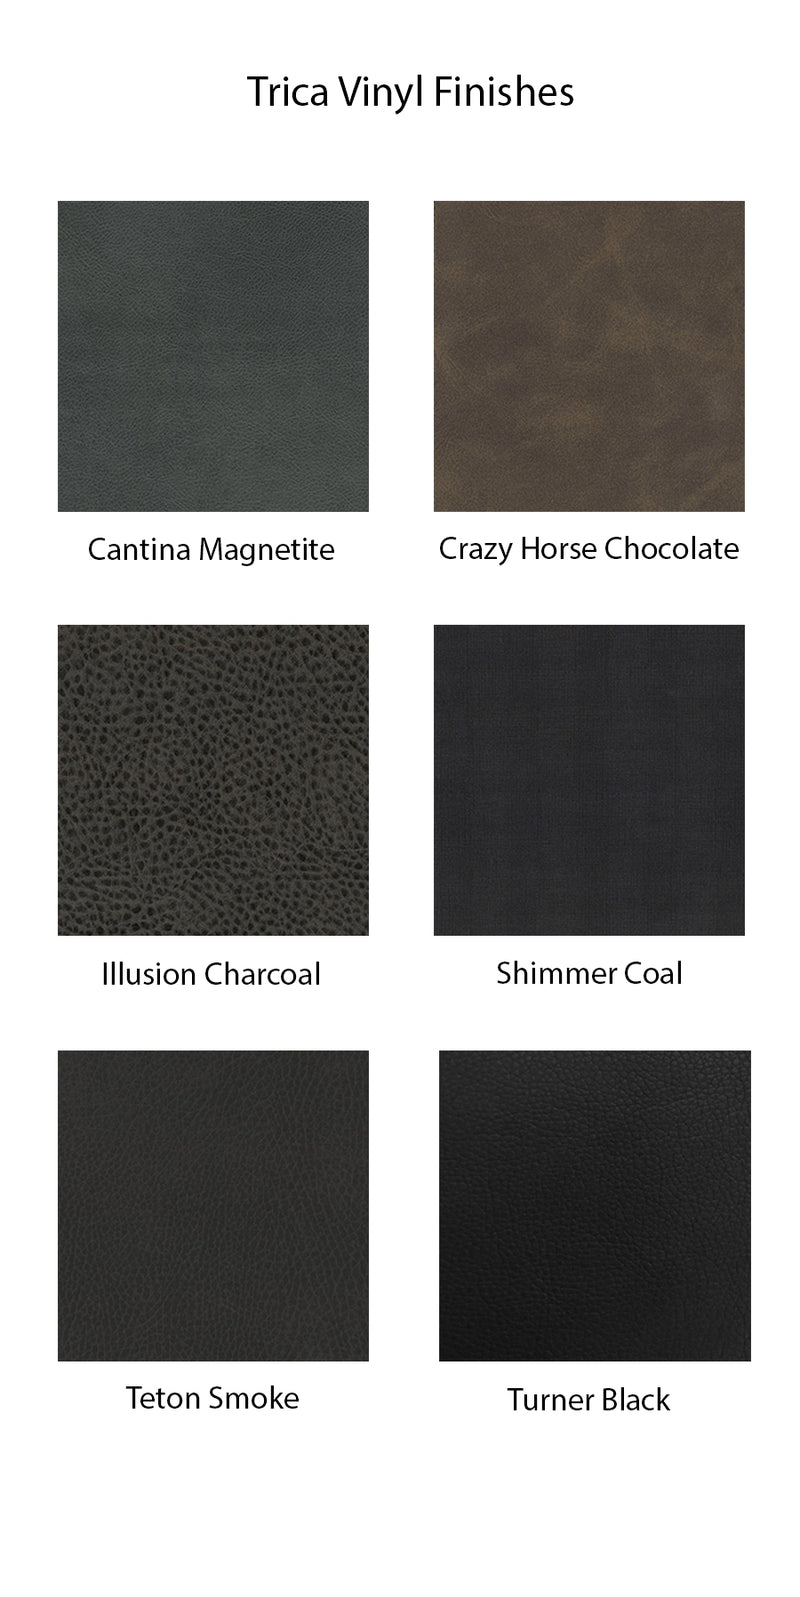 products/vinyl-finishes-trica_fb7c0cef-04fc-4f28-a452-f0de27118585.jpg